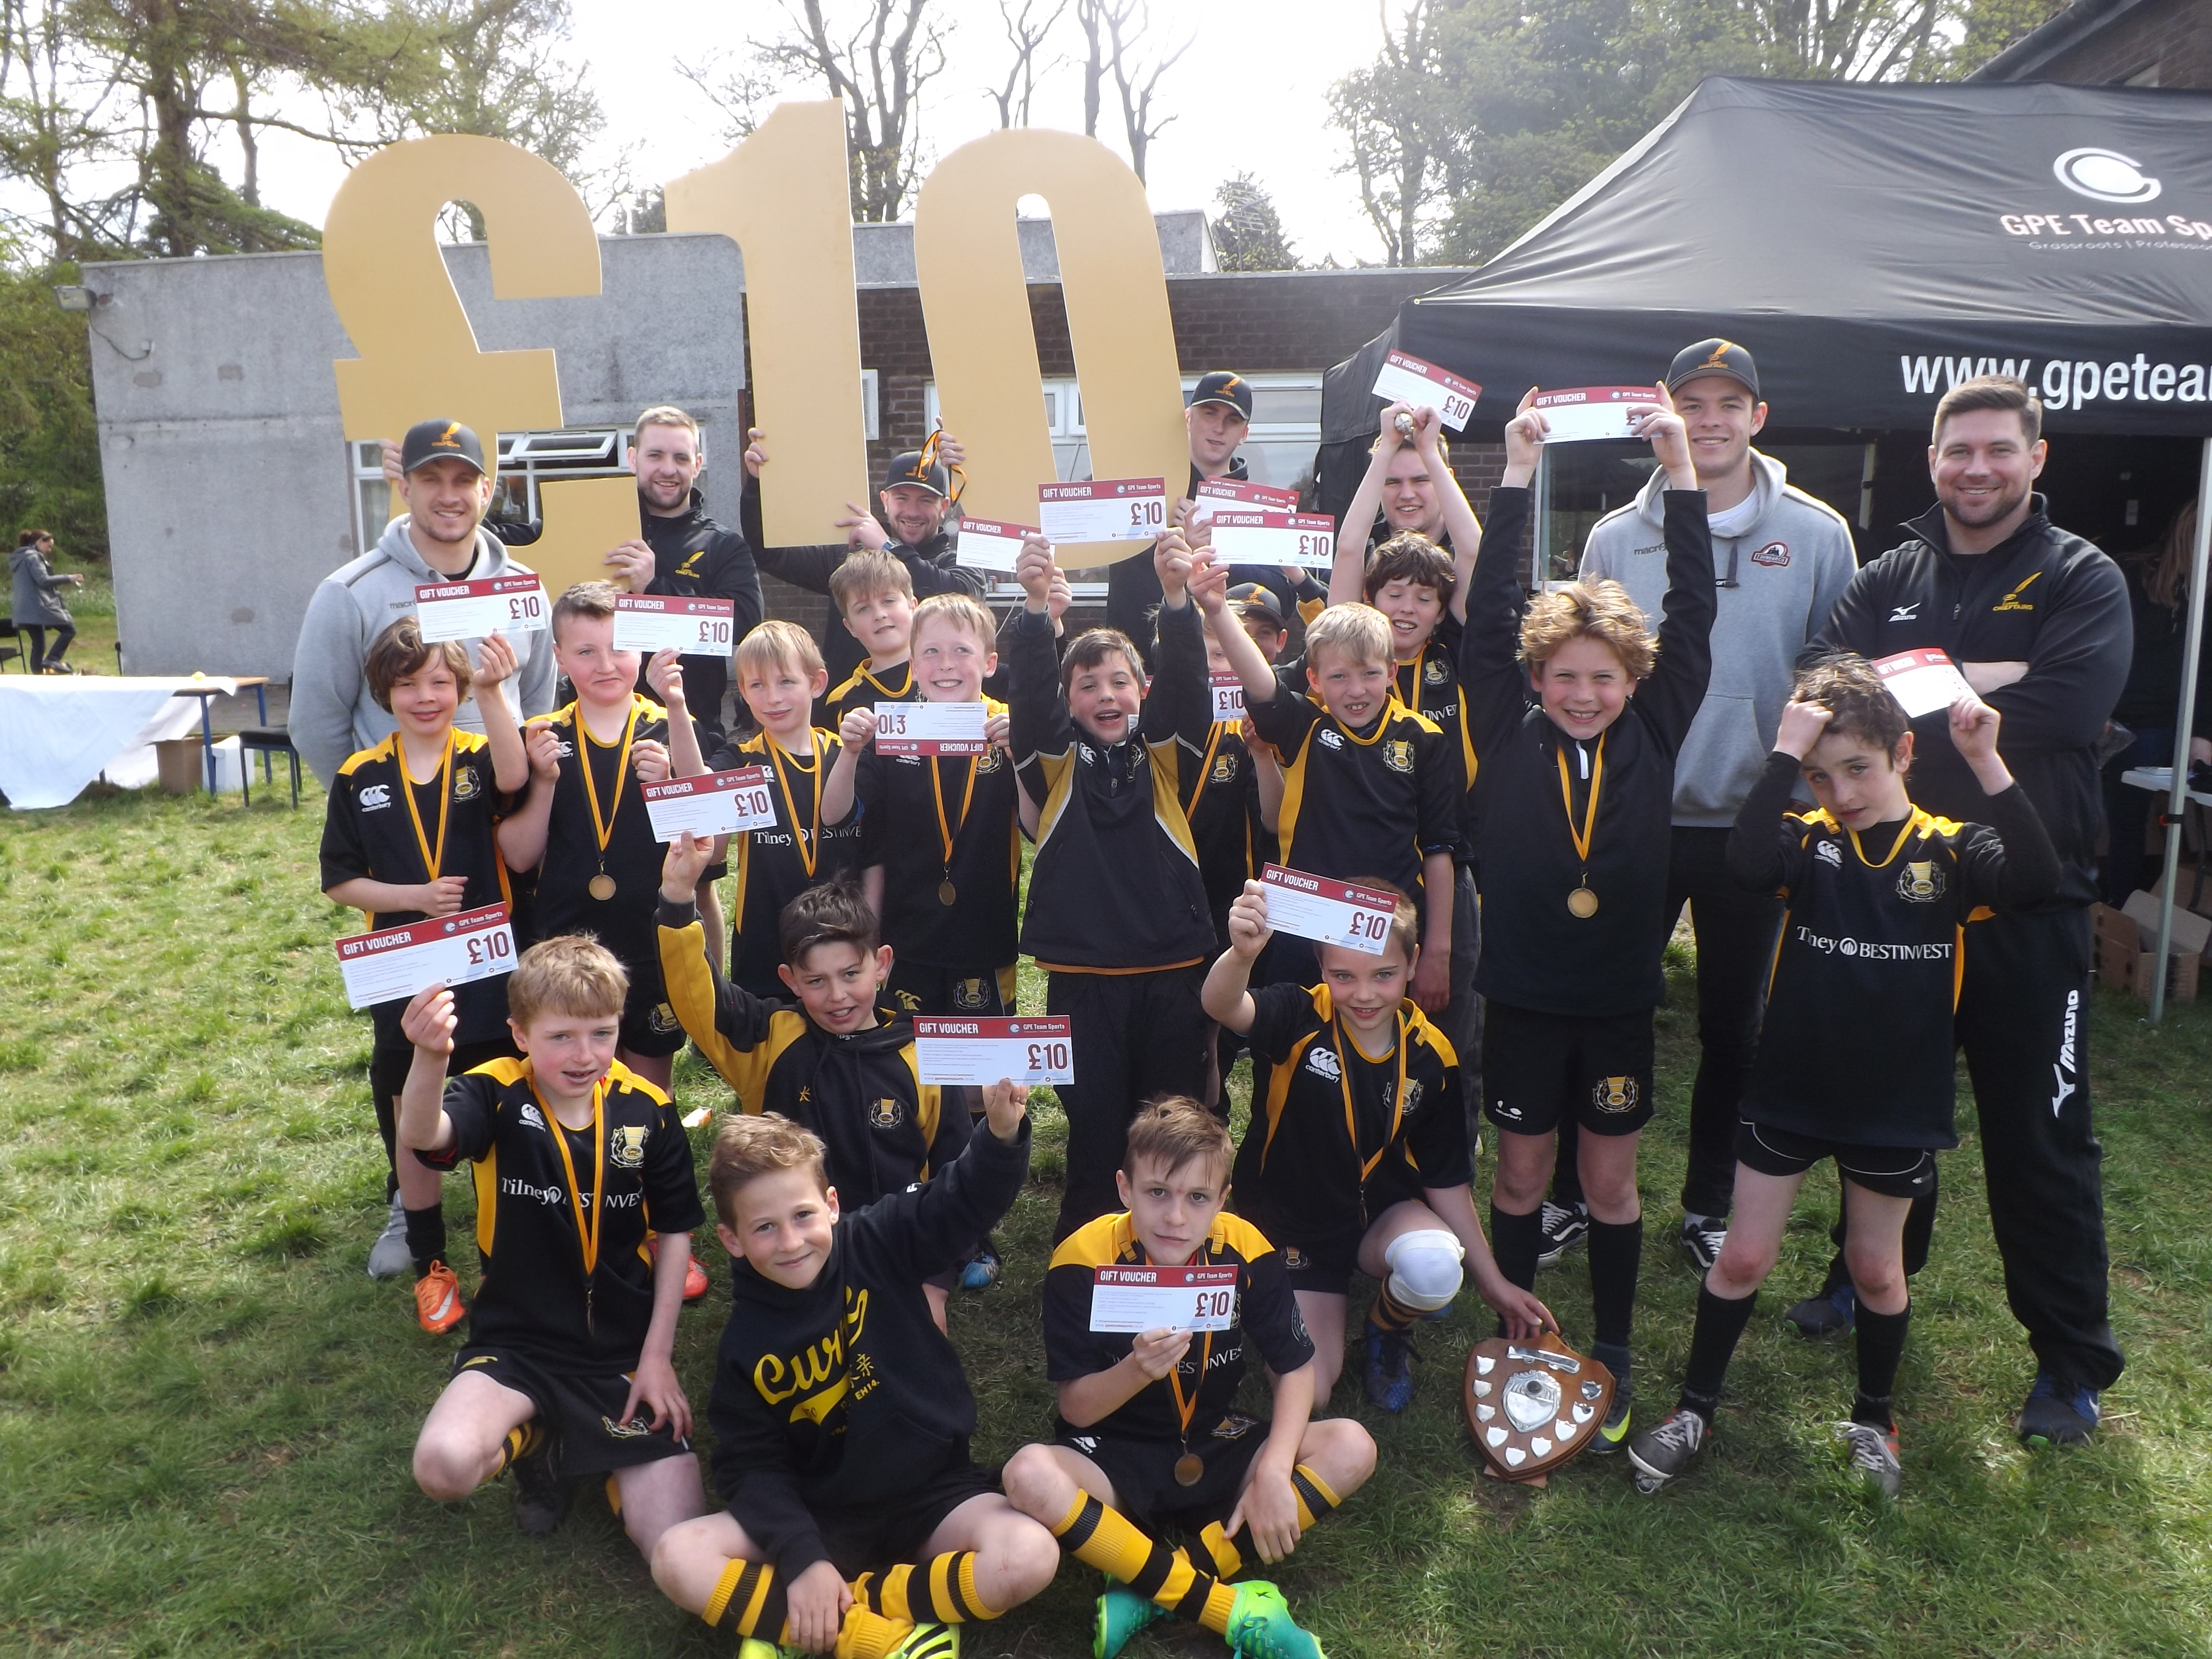 Property PR Strategy - Redeemable vouchers given to youths of Currie Rugby Club